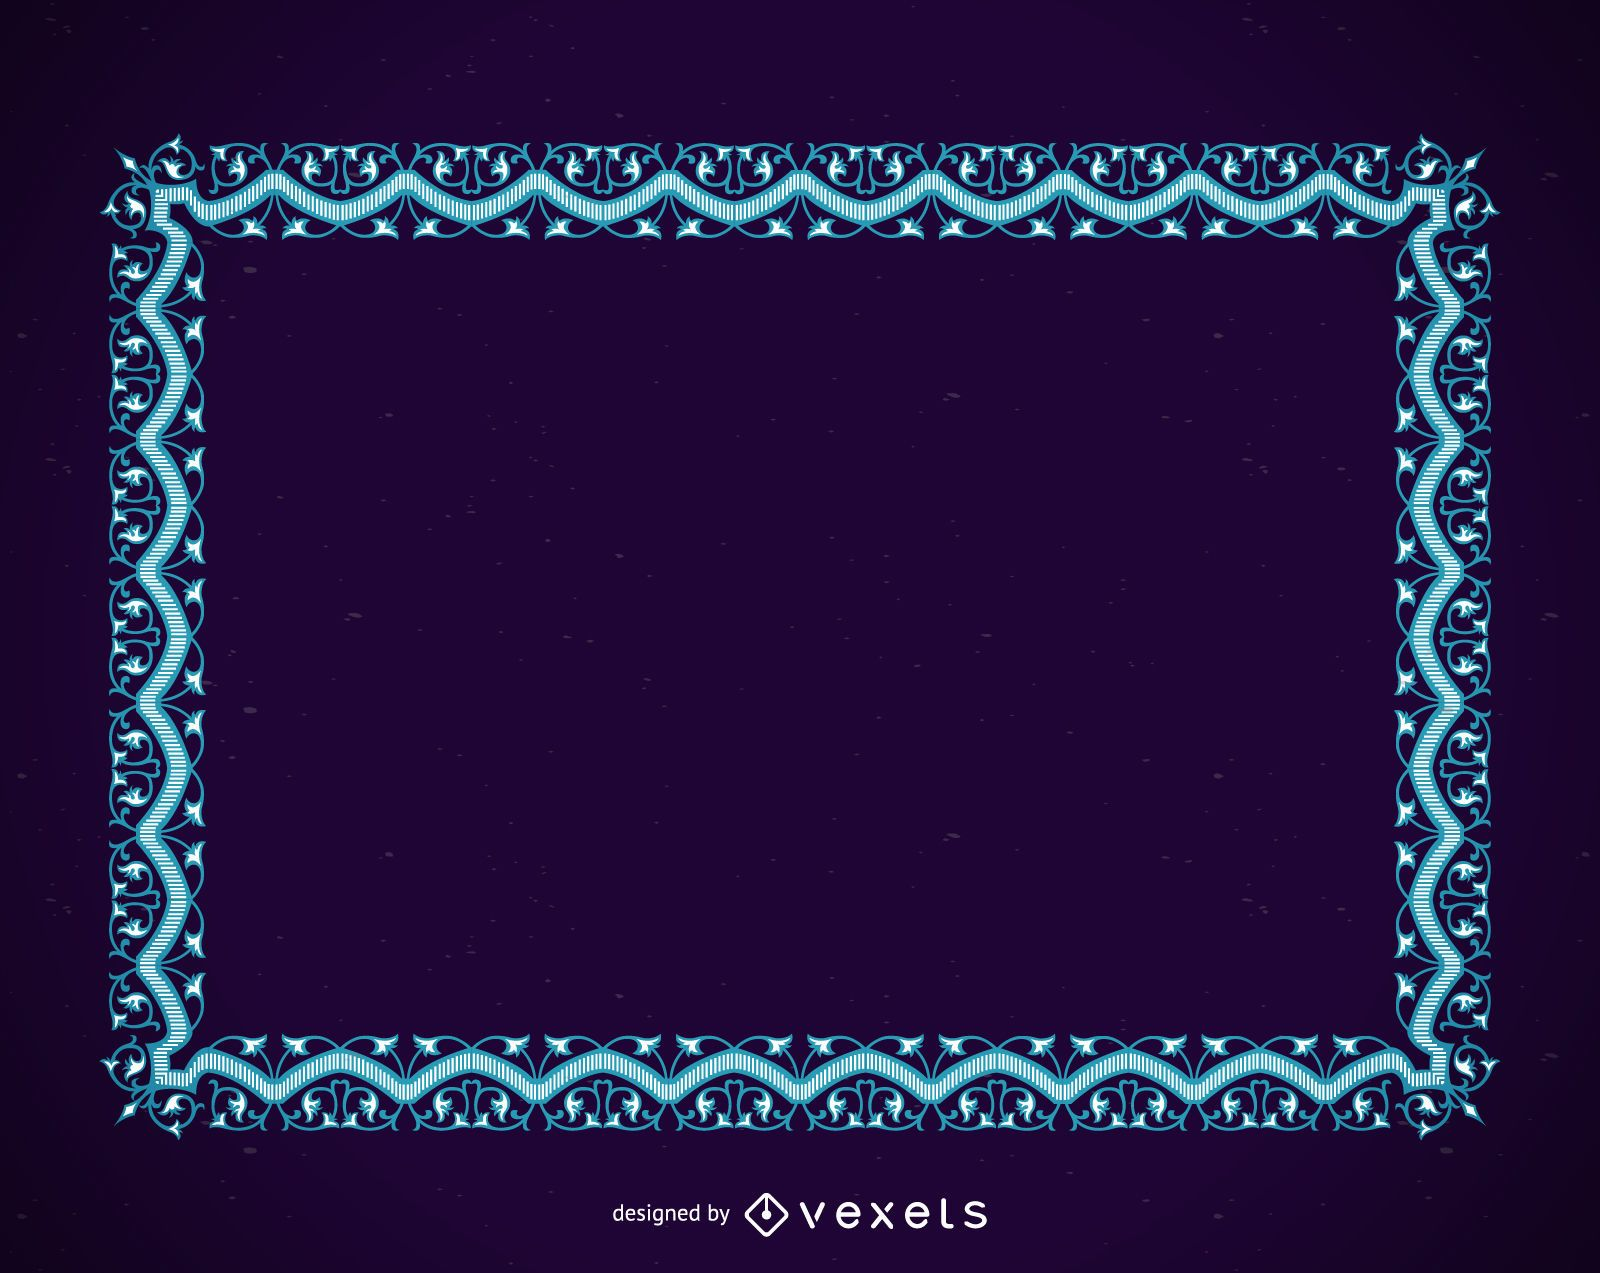 Blue frame with ornaments